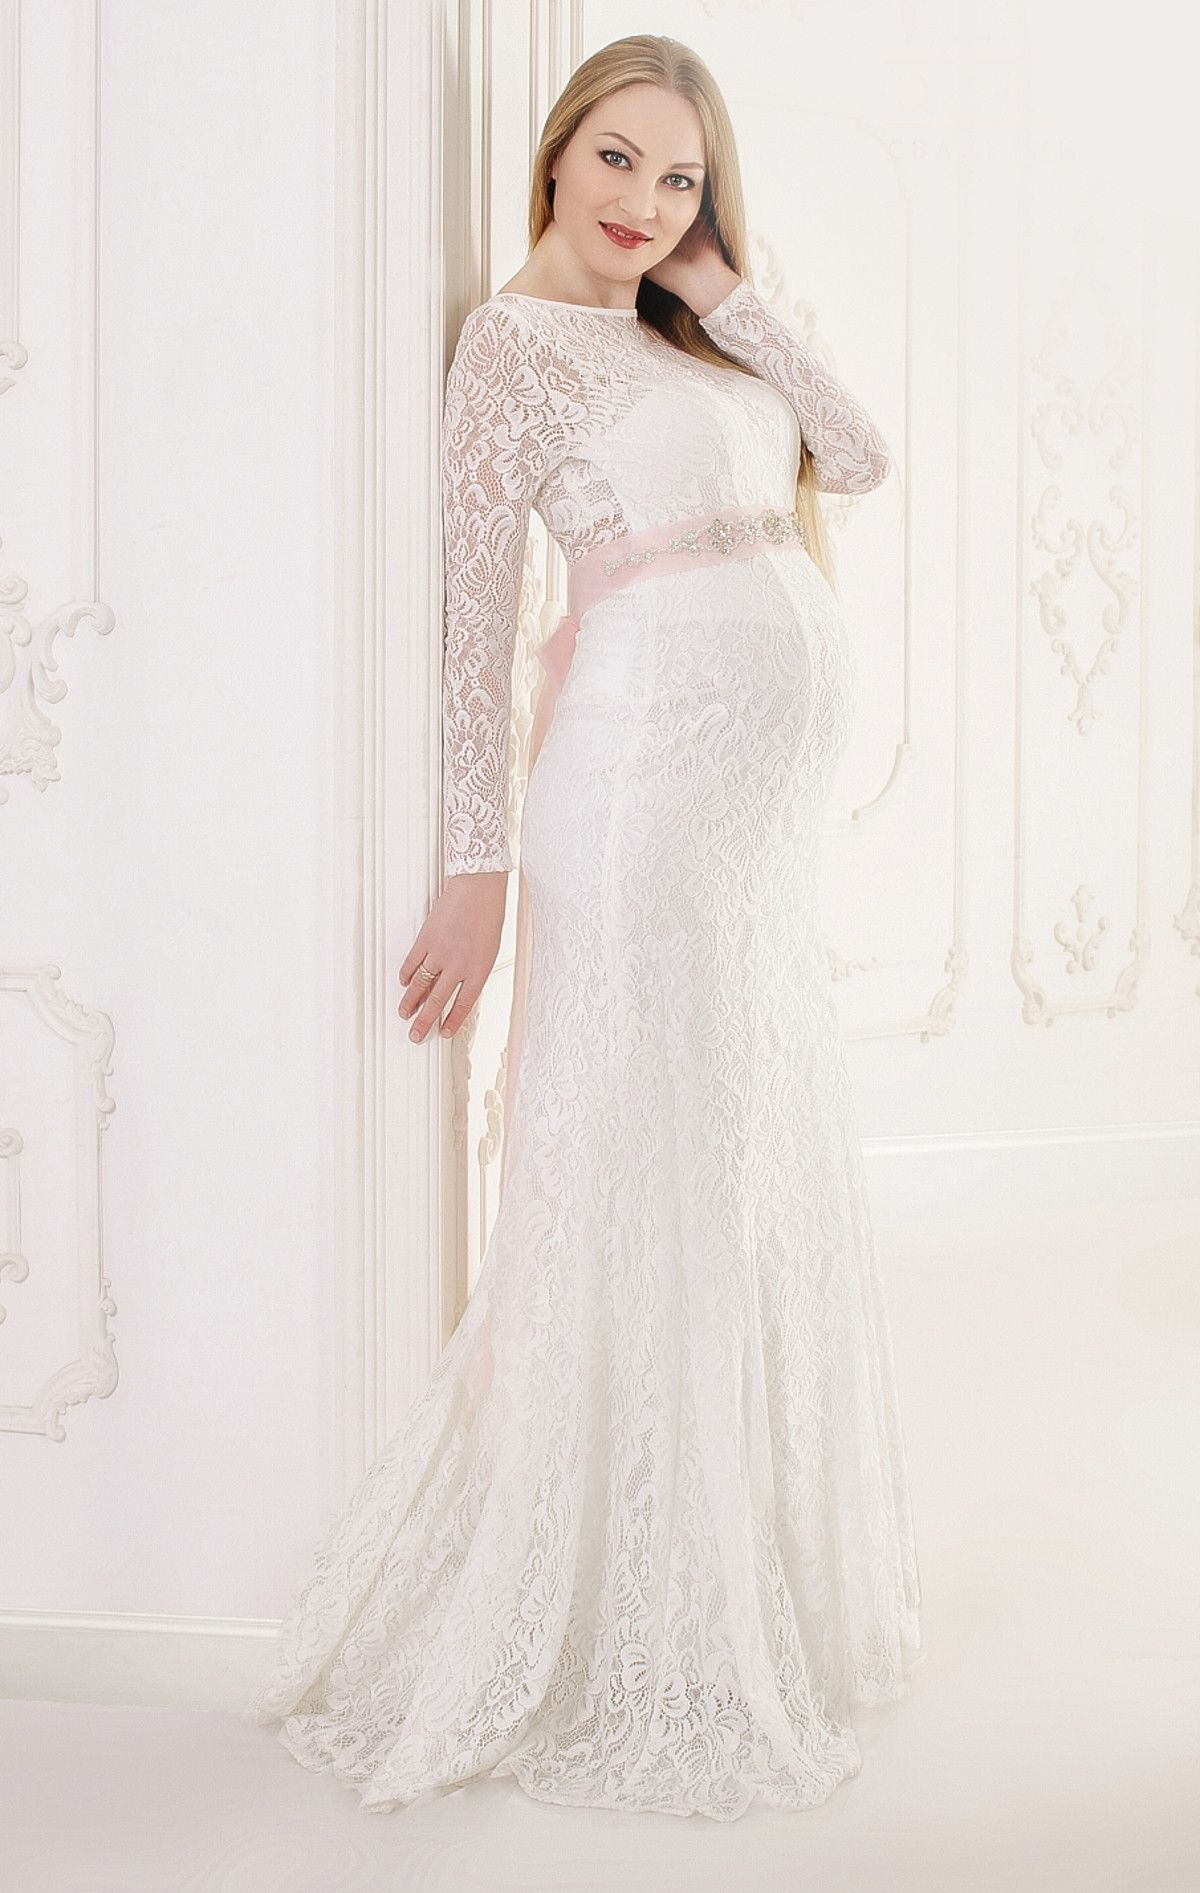 19 Of The Most Gorgeous Maternity For Pregnant Brides